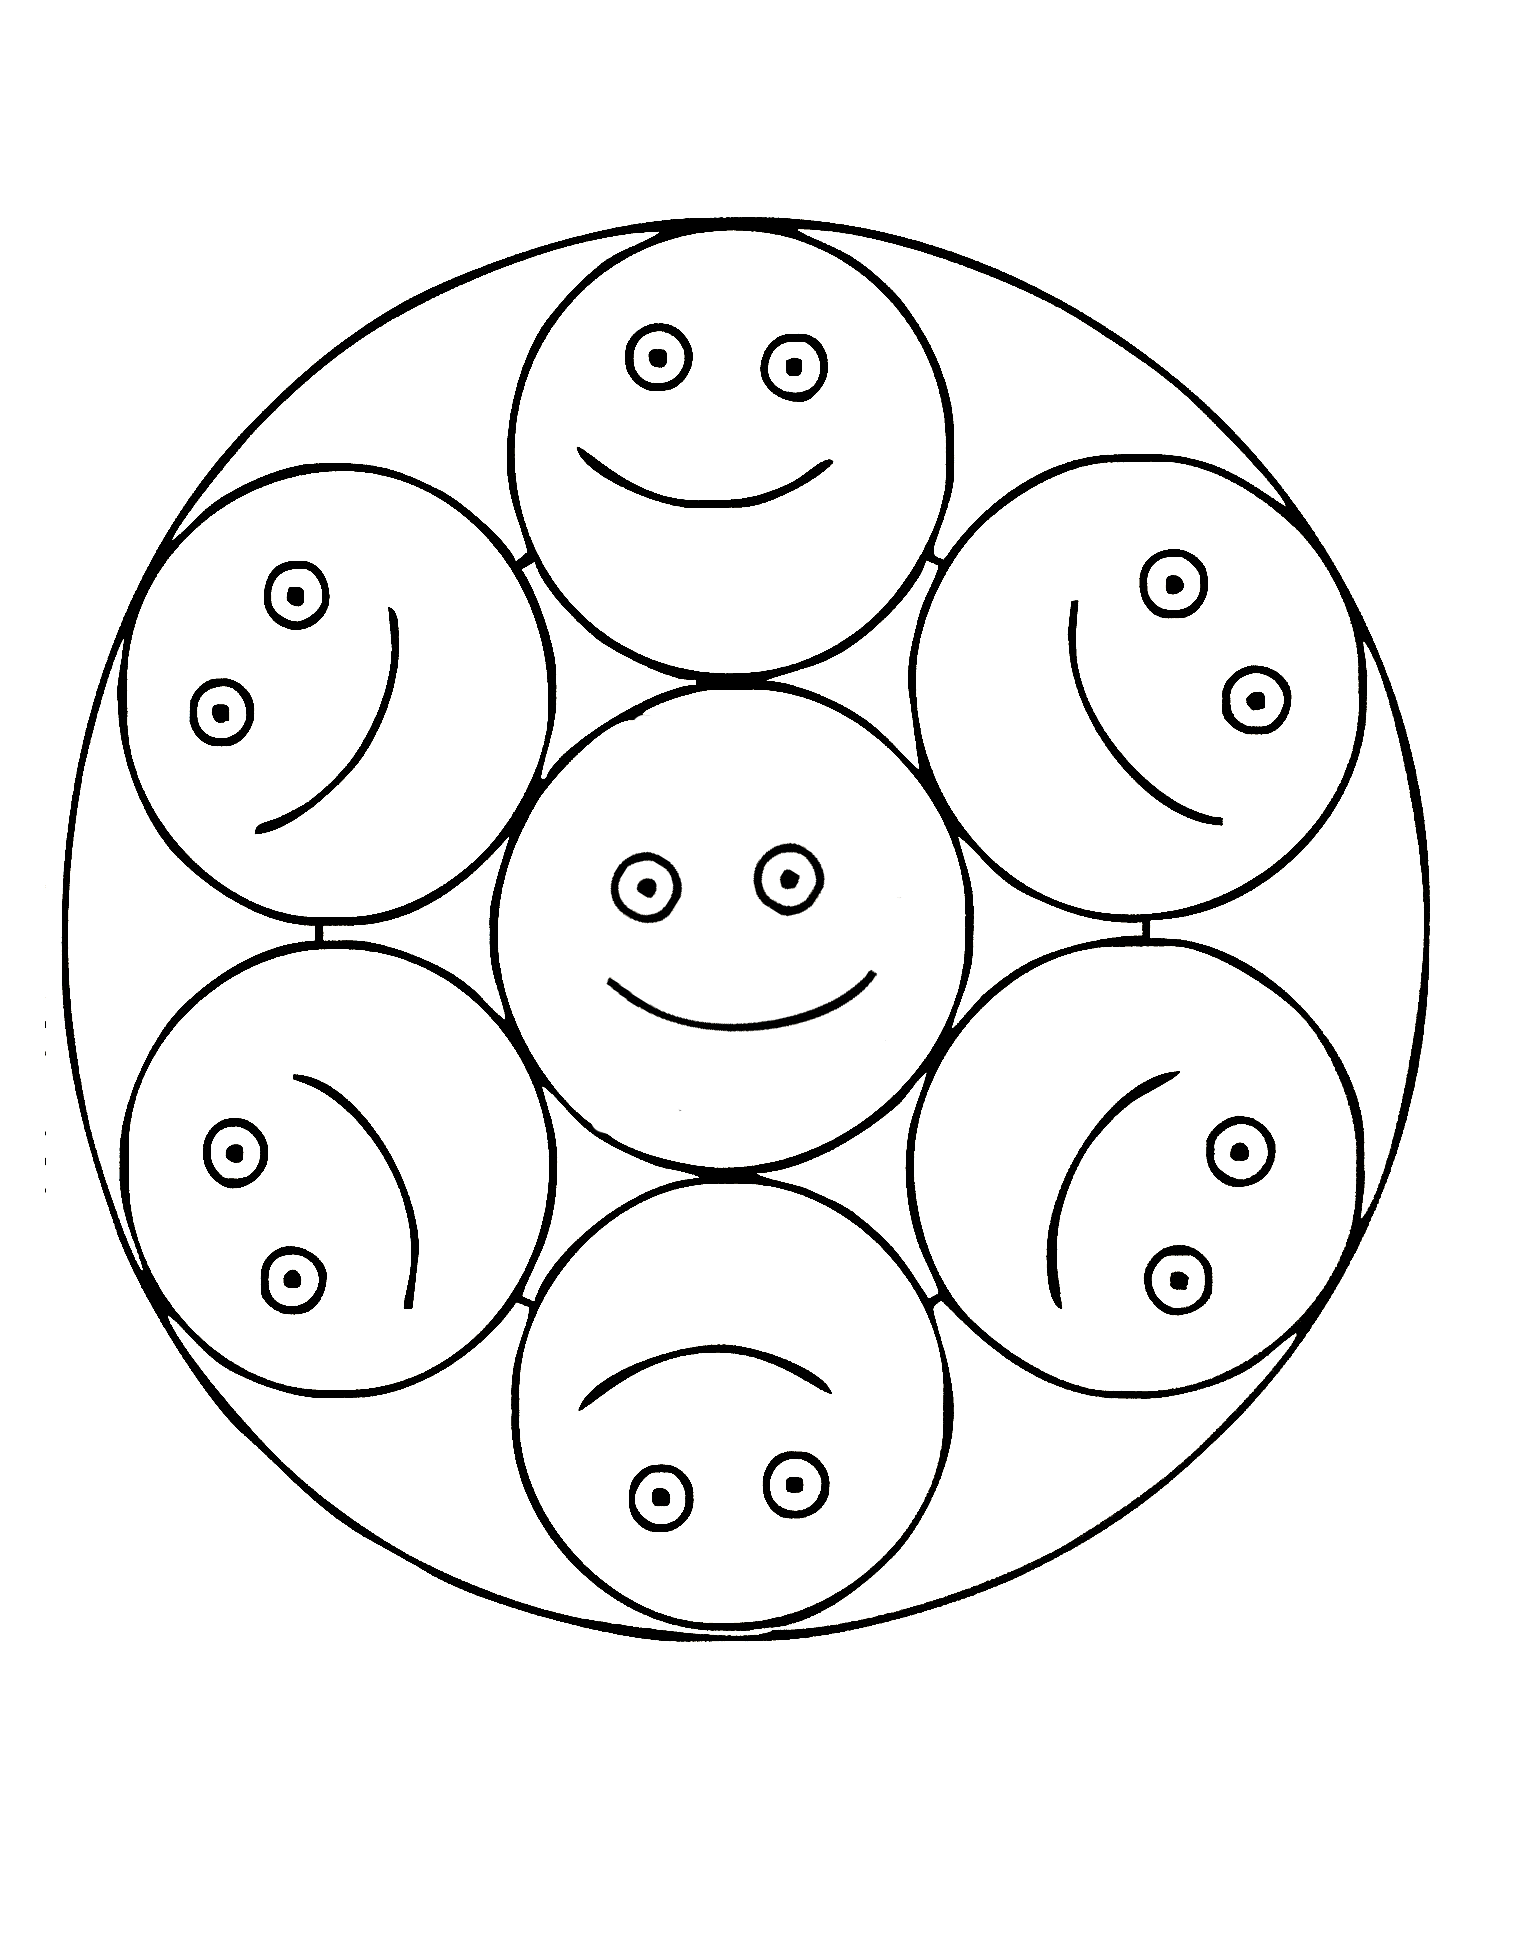 Smiley Mandala Coloring Page For Children